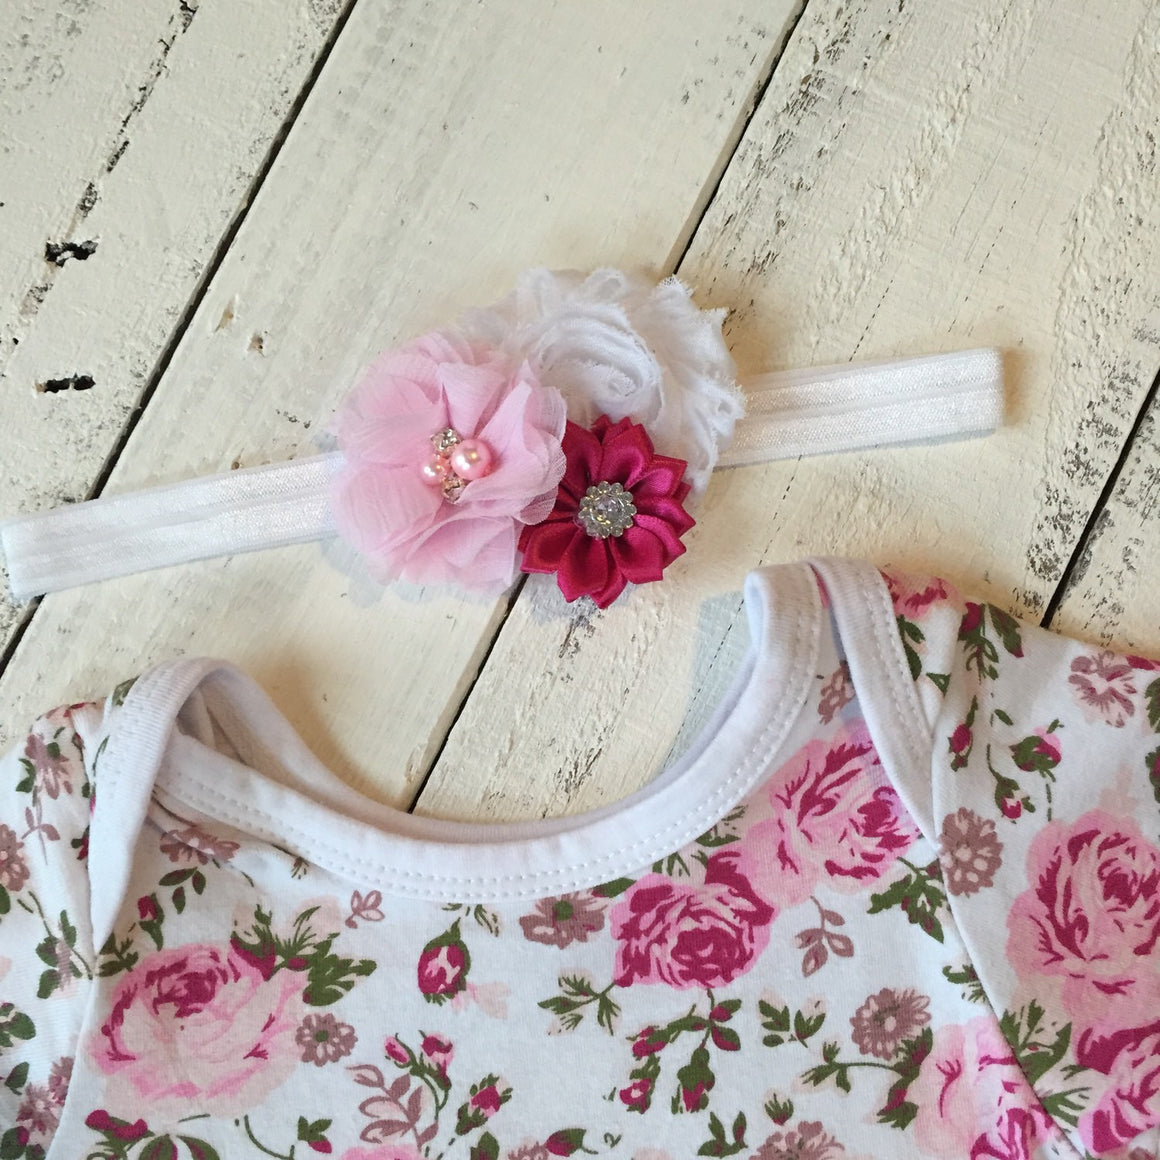 Floral Bodysuit Tutu Dress with matching headband